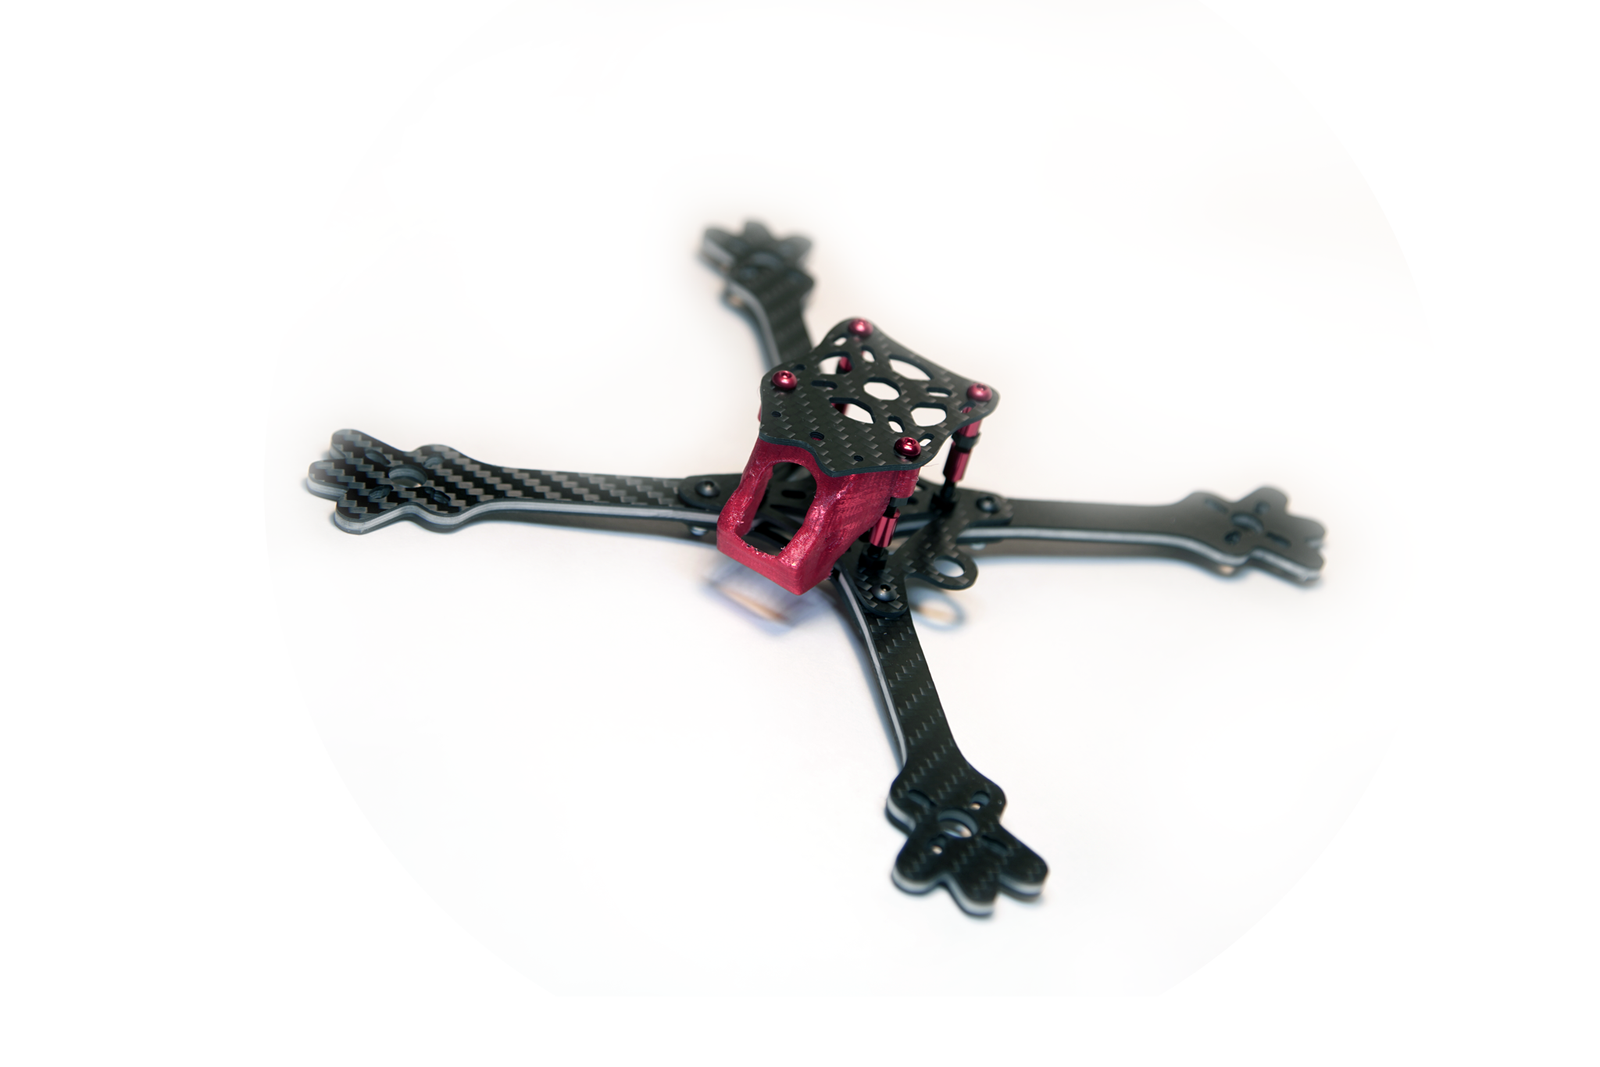 Schnapp Dragon V2 Foam-Core 5-Inch Racing Frame - SNHE